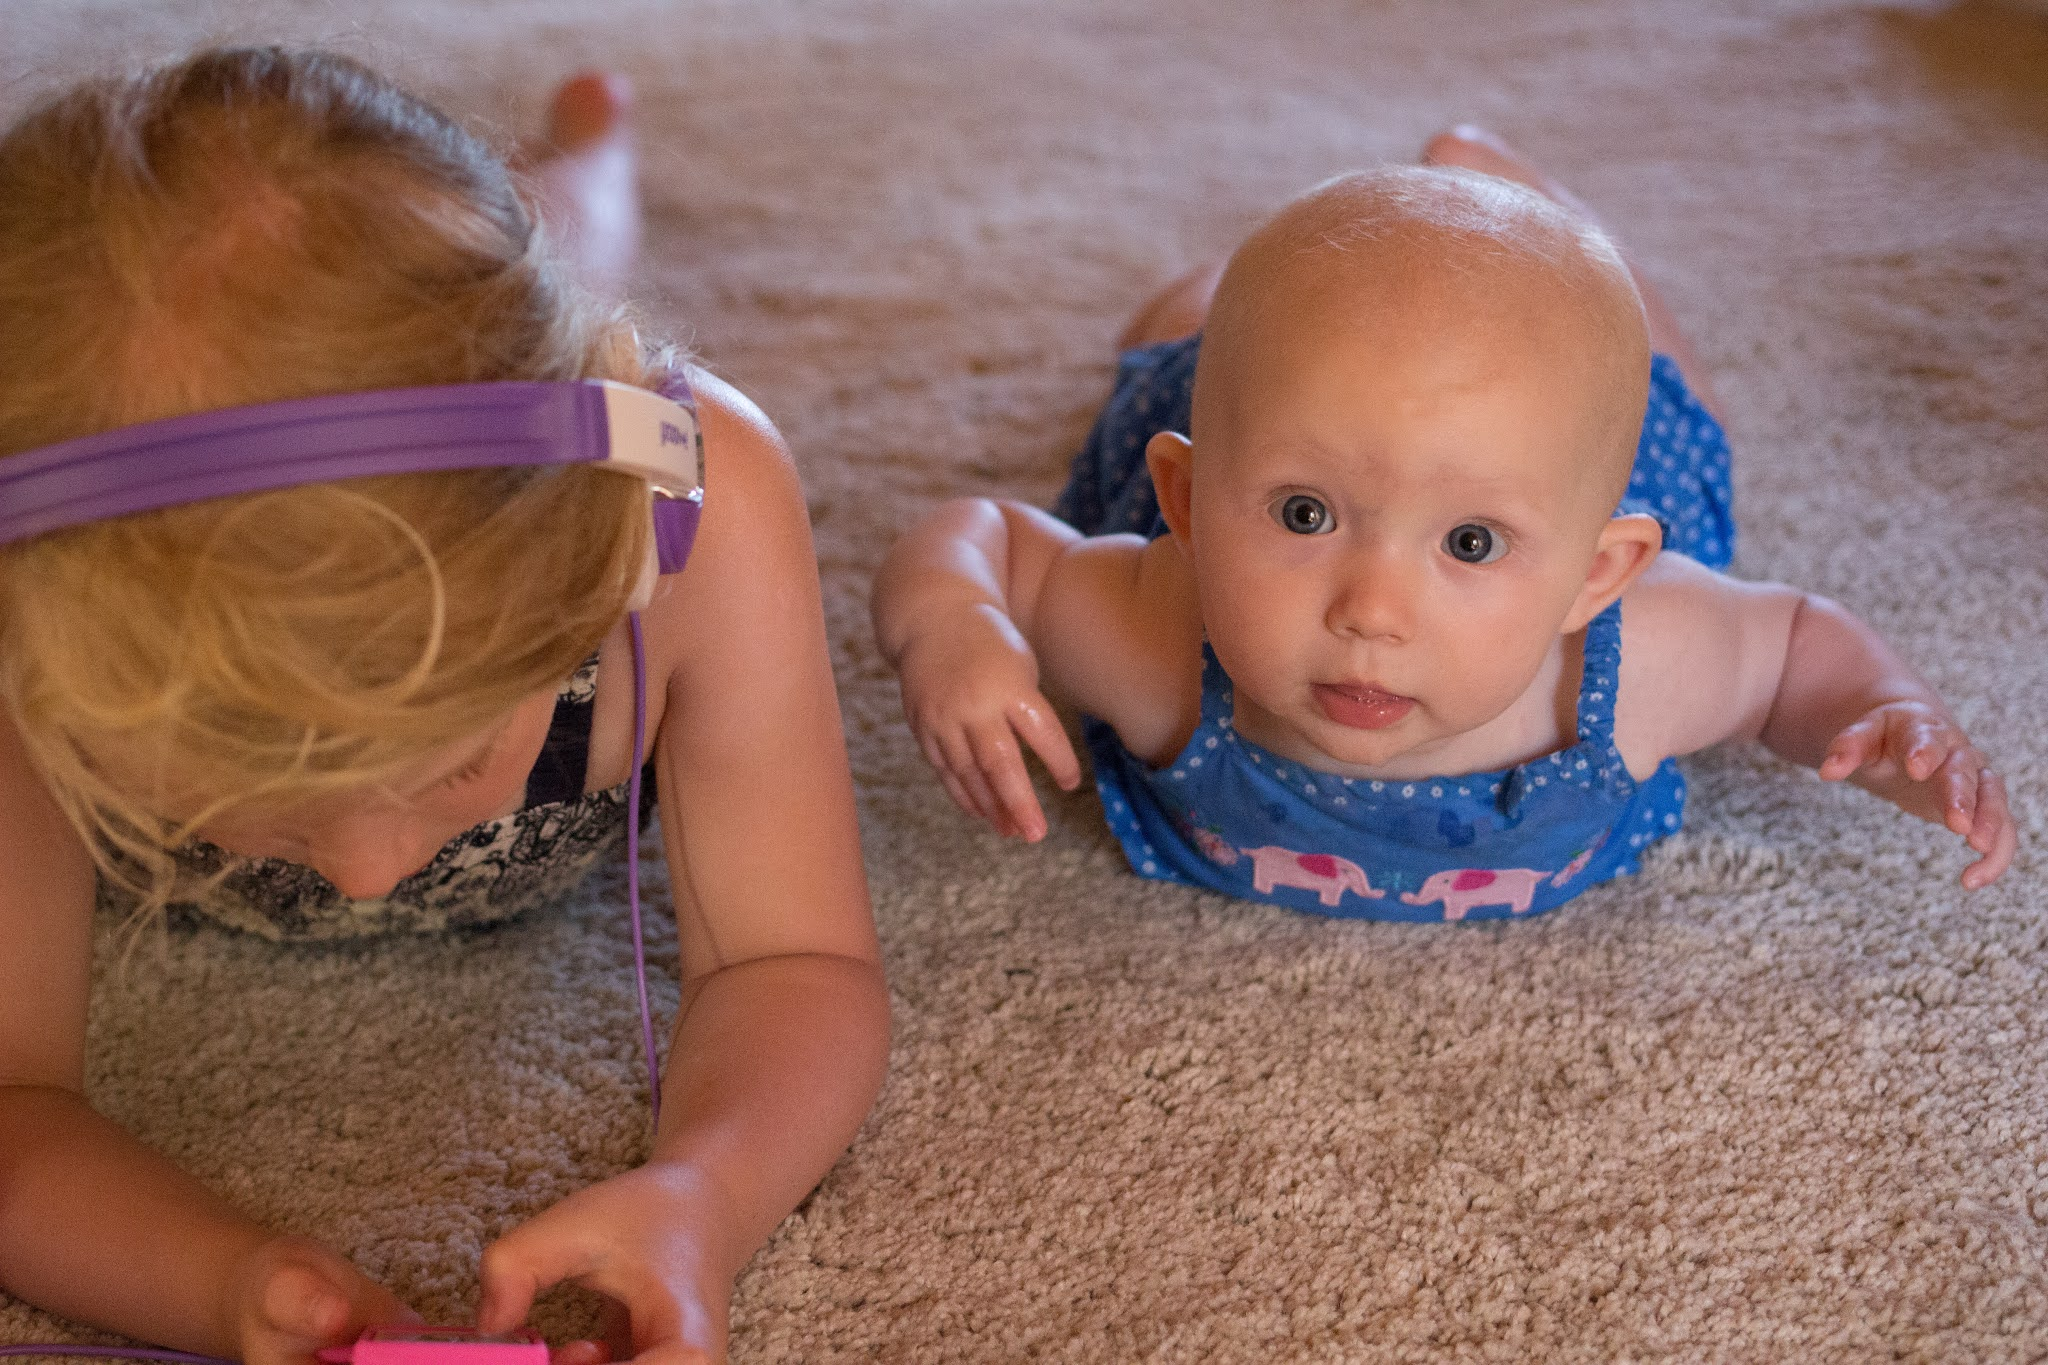 Children on a carpet and cleaning it safely